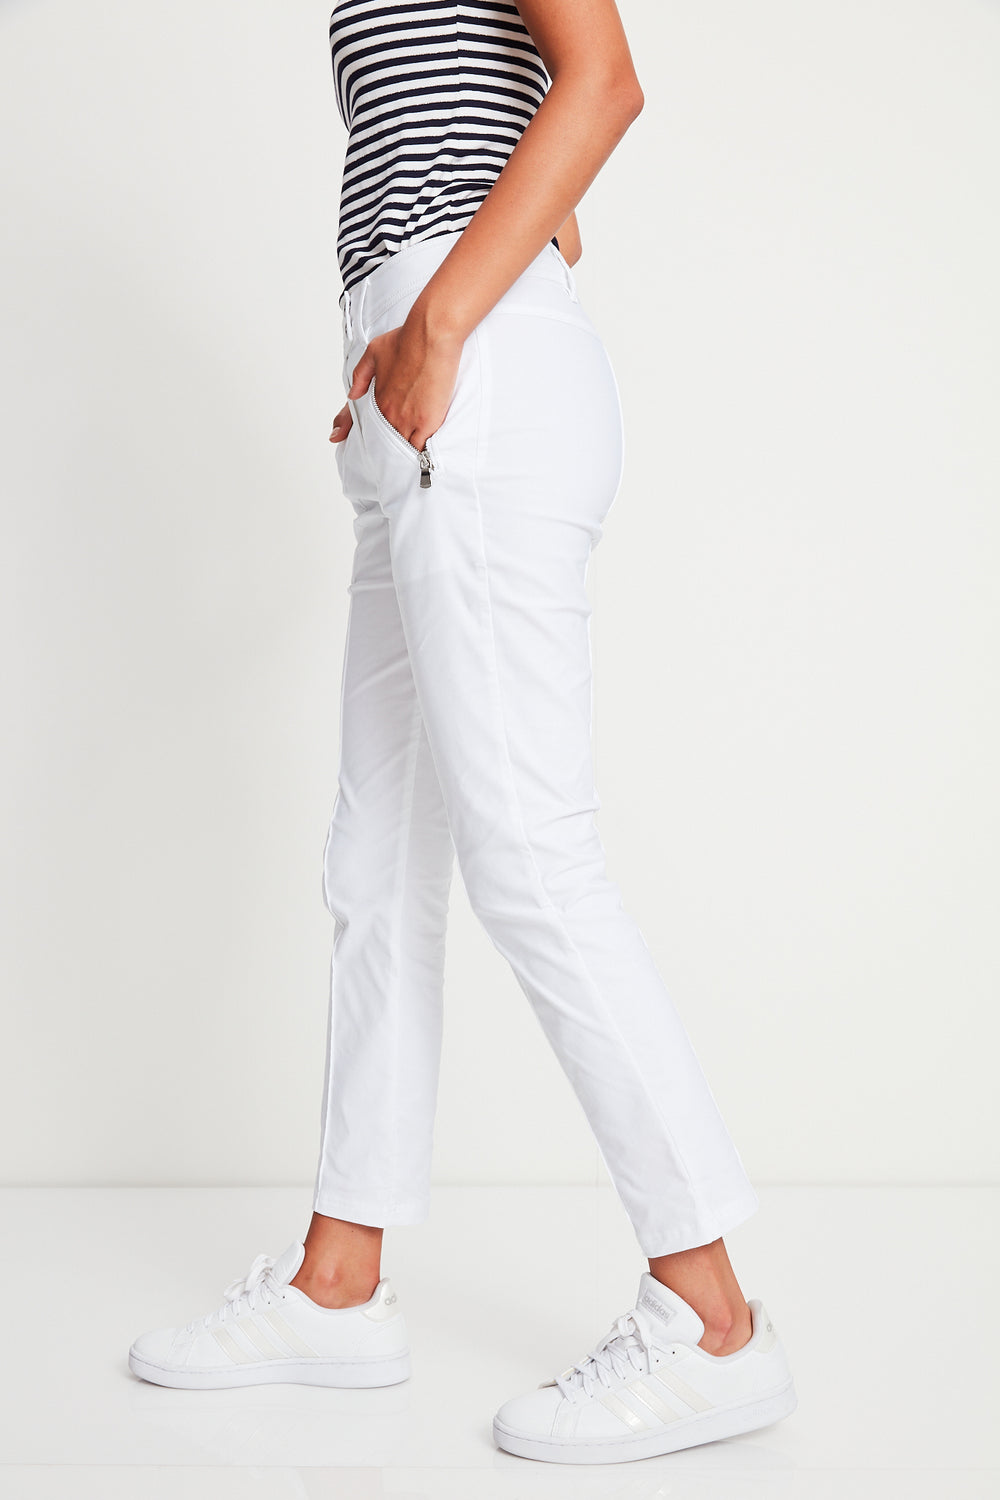 Peggy Curvy Zippered Pants